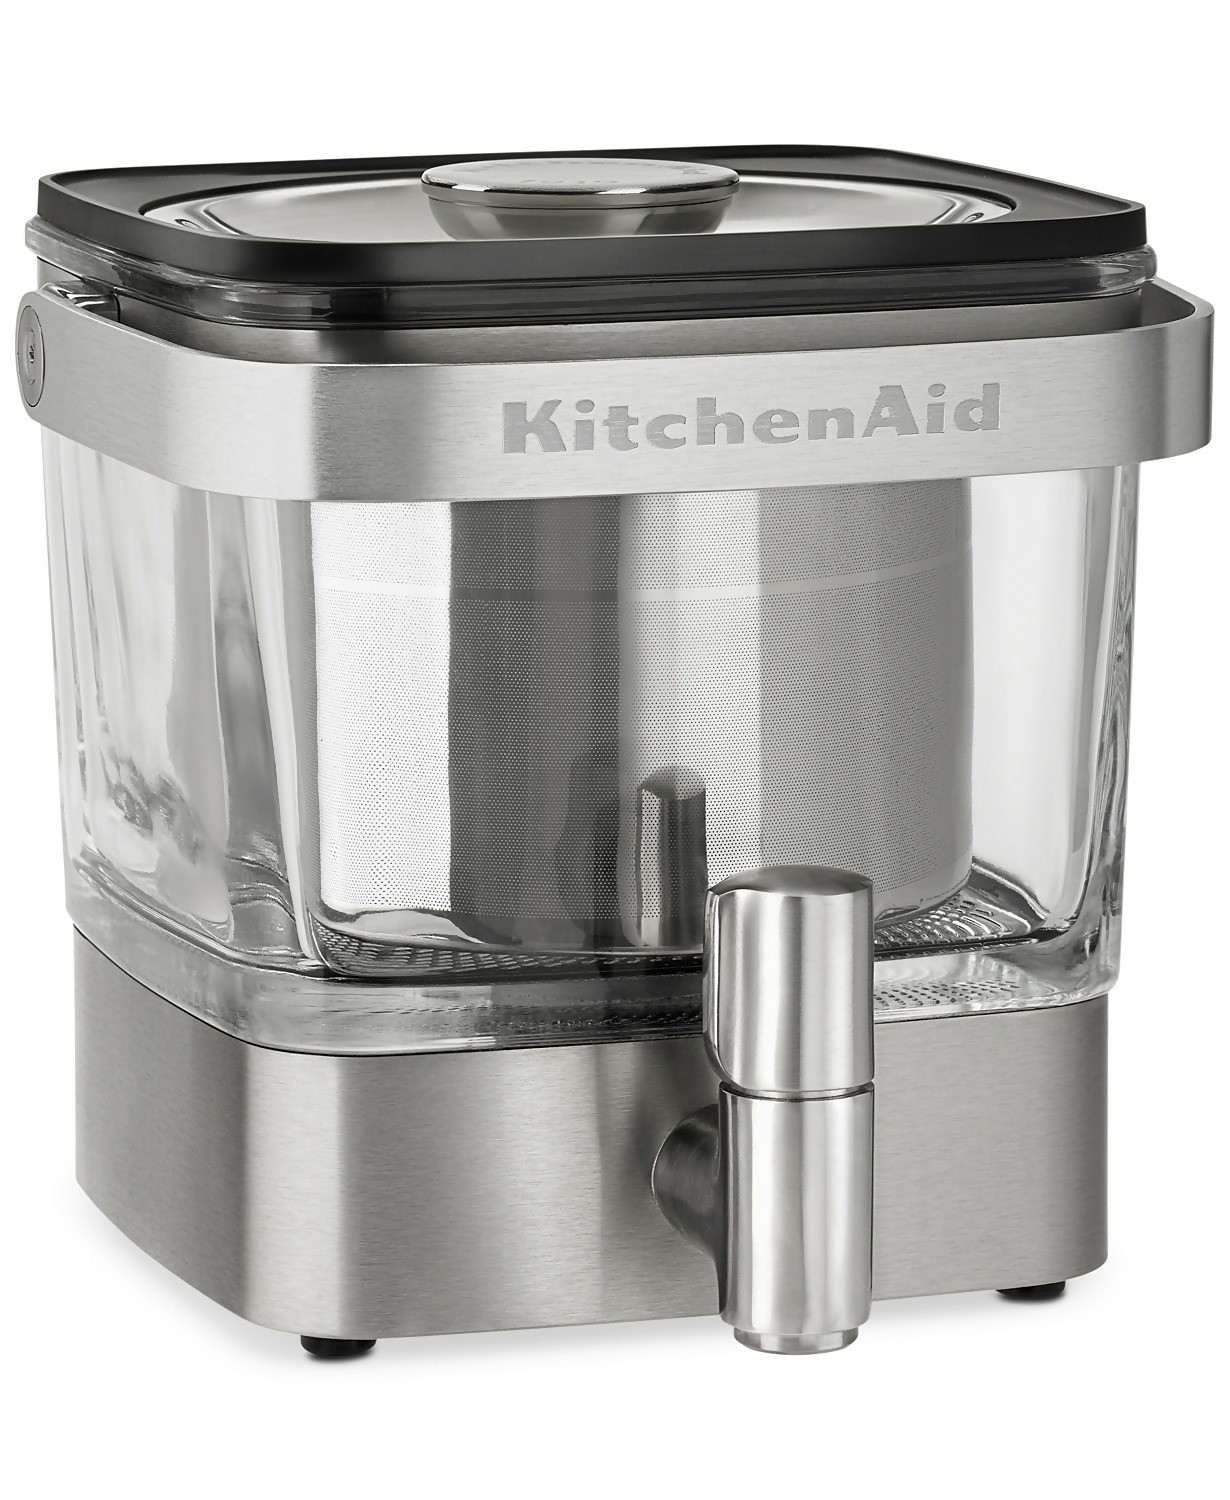 KitchenAid Cold-Brew Coffee Maker